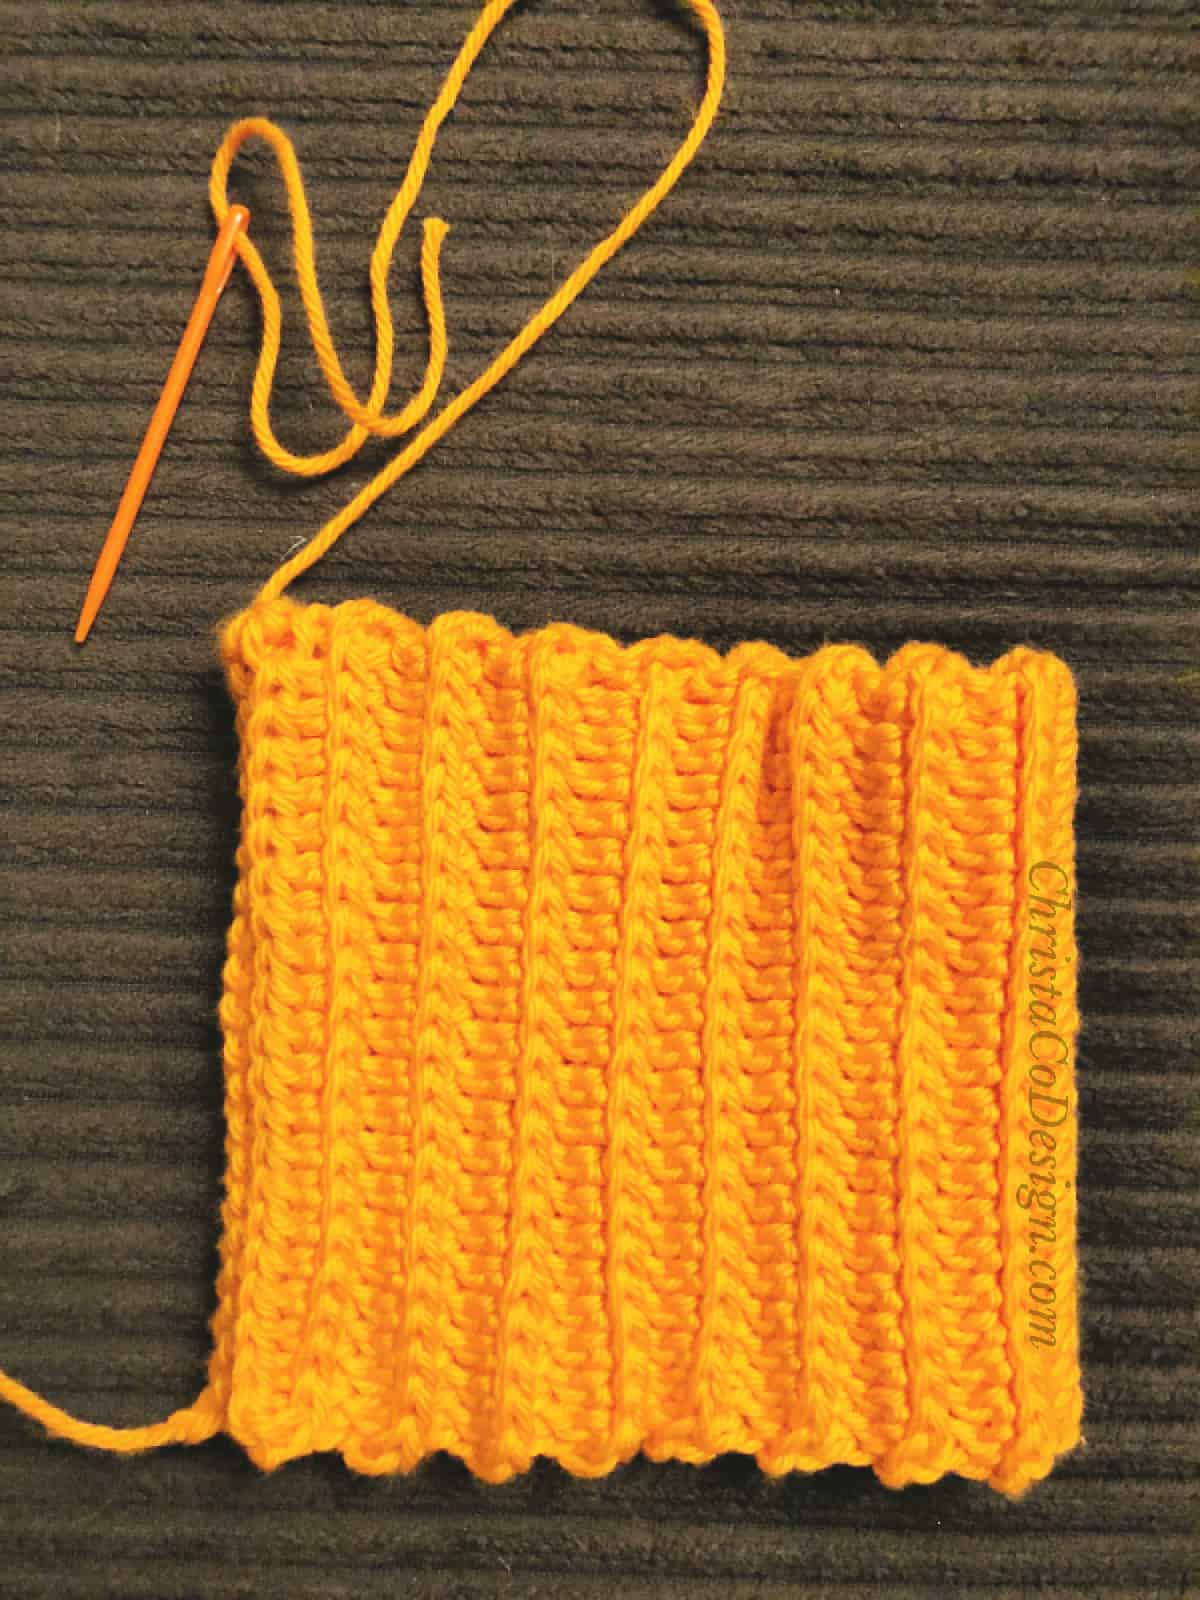 Fabric folding and seaming orange crochet rectangle for pumpkin hat.